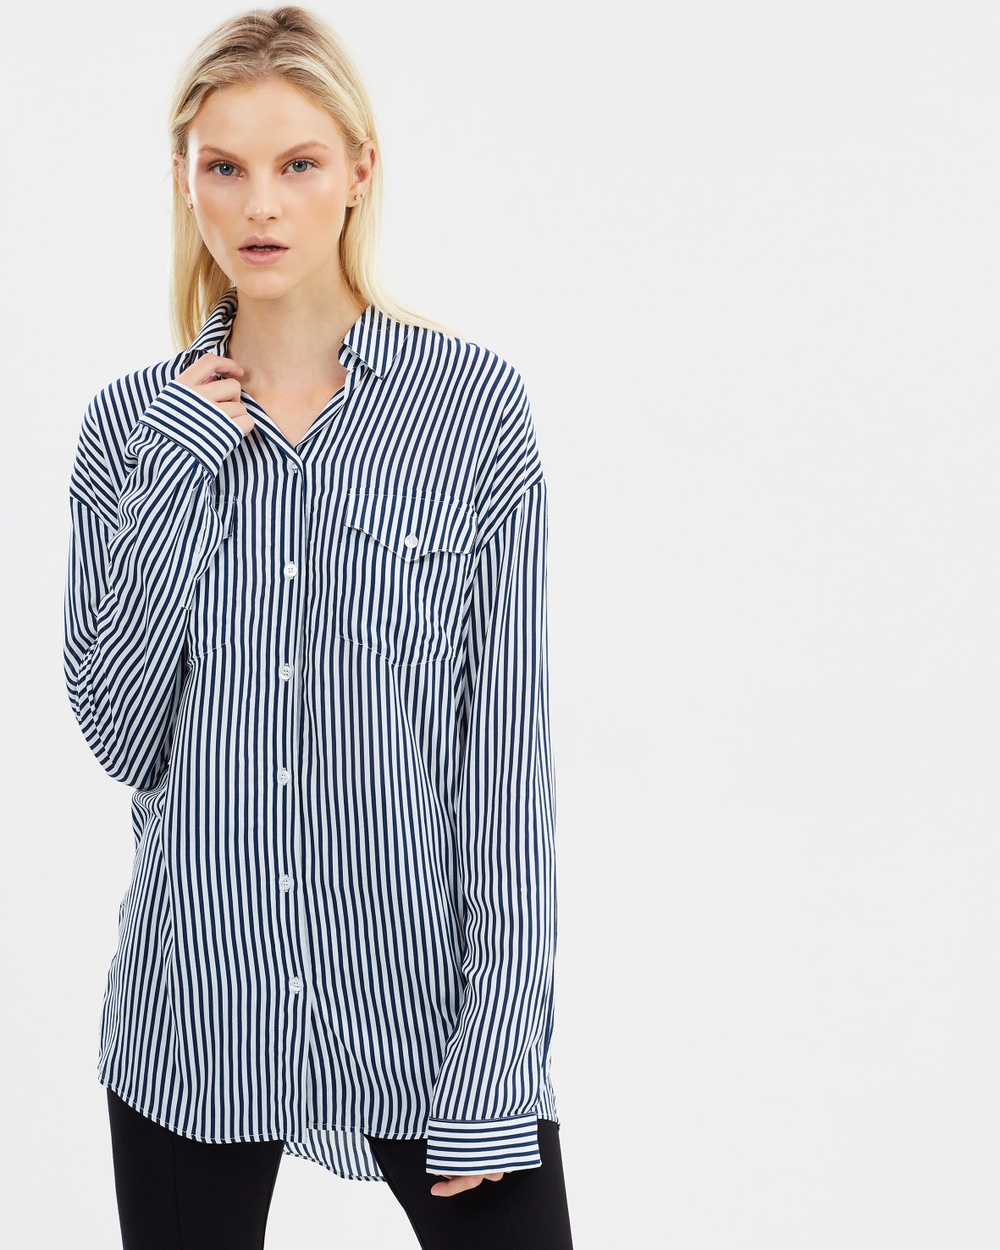 The Kooples Striped James Shirt Tops Navy Striped James Shirt